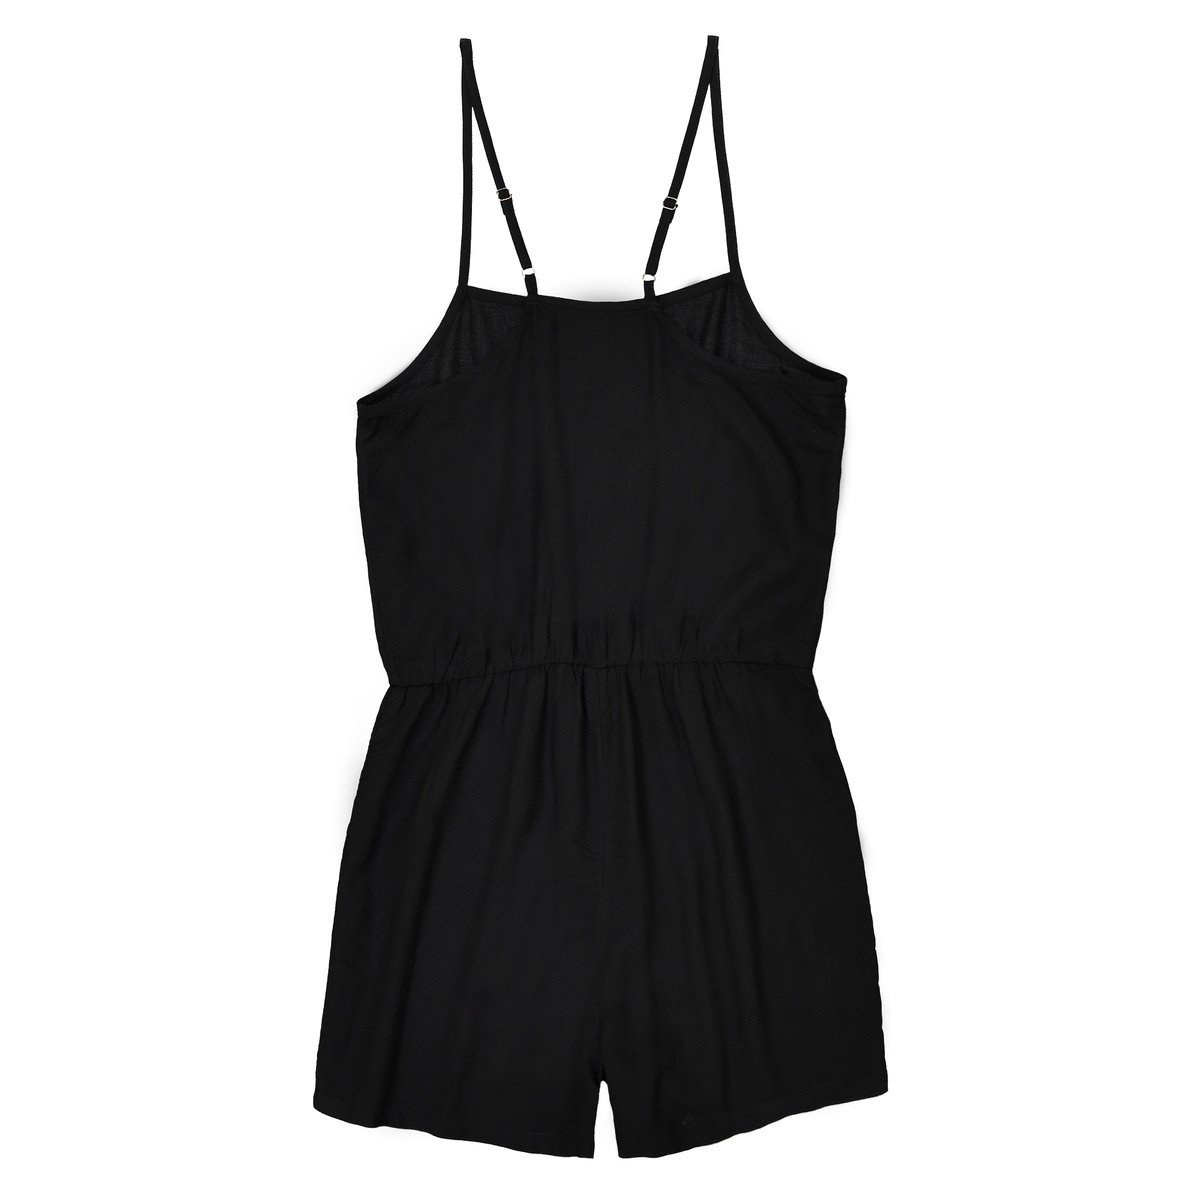 10-16 Years La Redoute Collections Big Girls Plain Playsuit